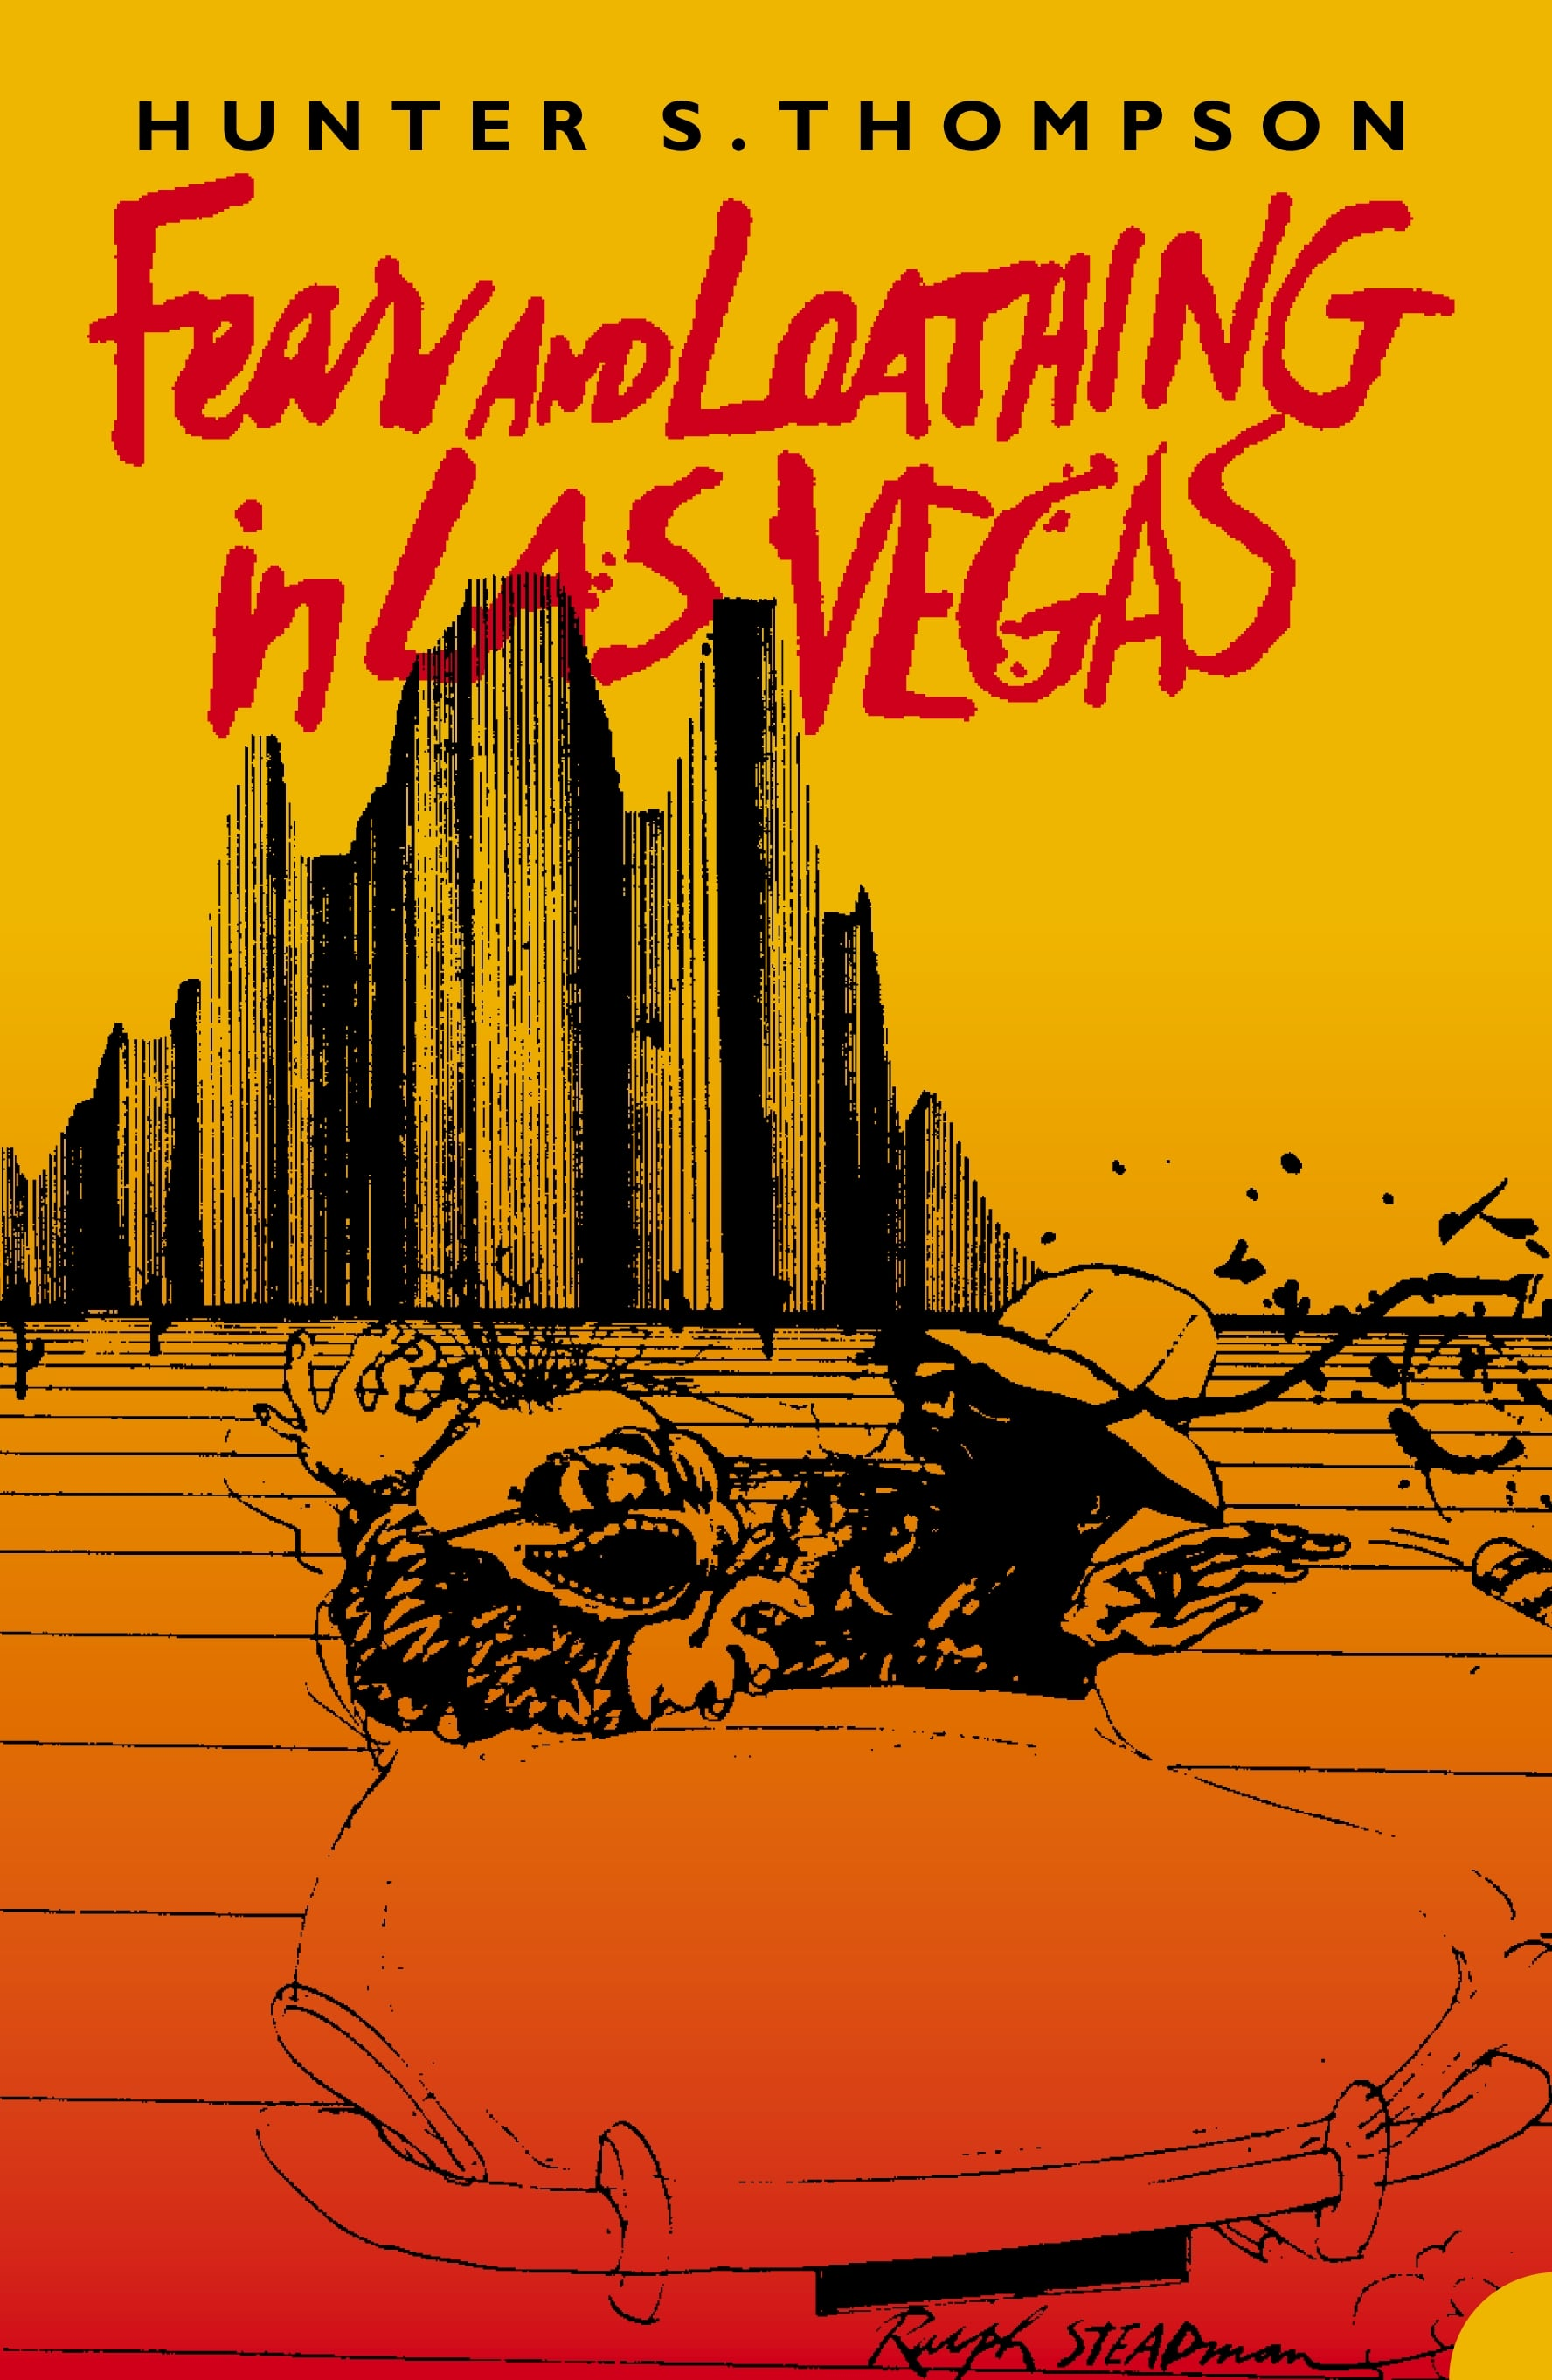 Nevada: Fear and Loathing in Las Vegas by Hunter S. Thompson